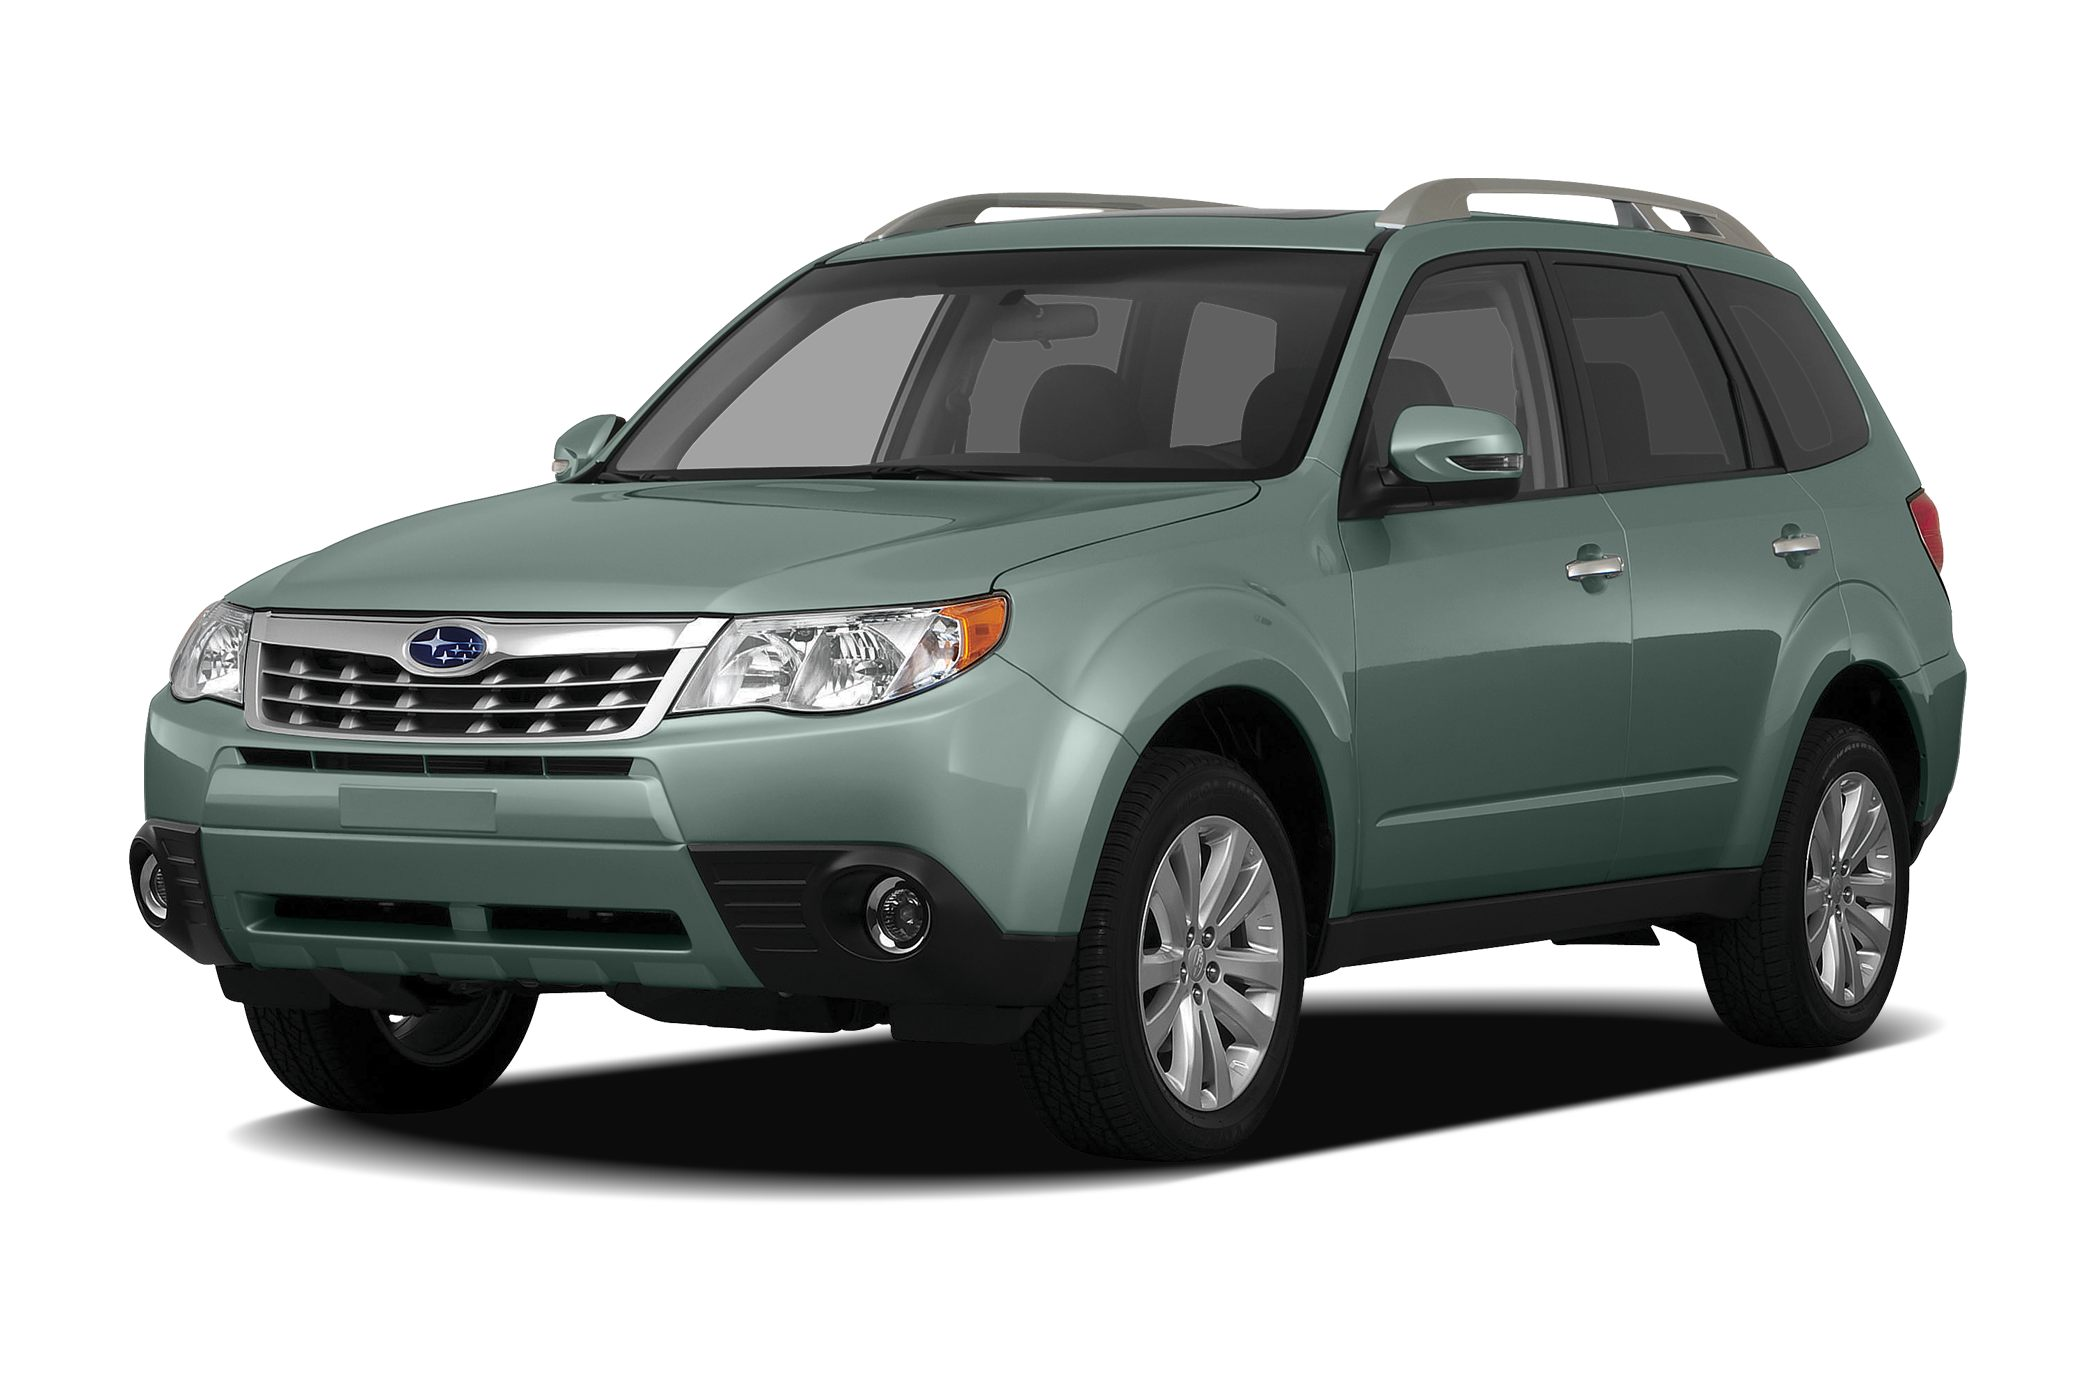 2011 Subaru Forester 2.5 X Premium SUV for sale in Beckley for $19,775 with 44,897 miles.